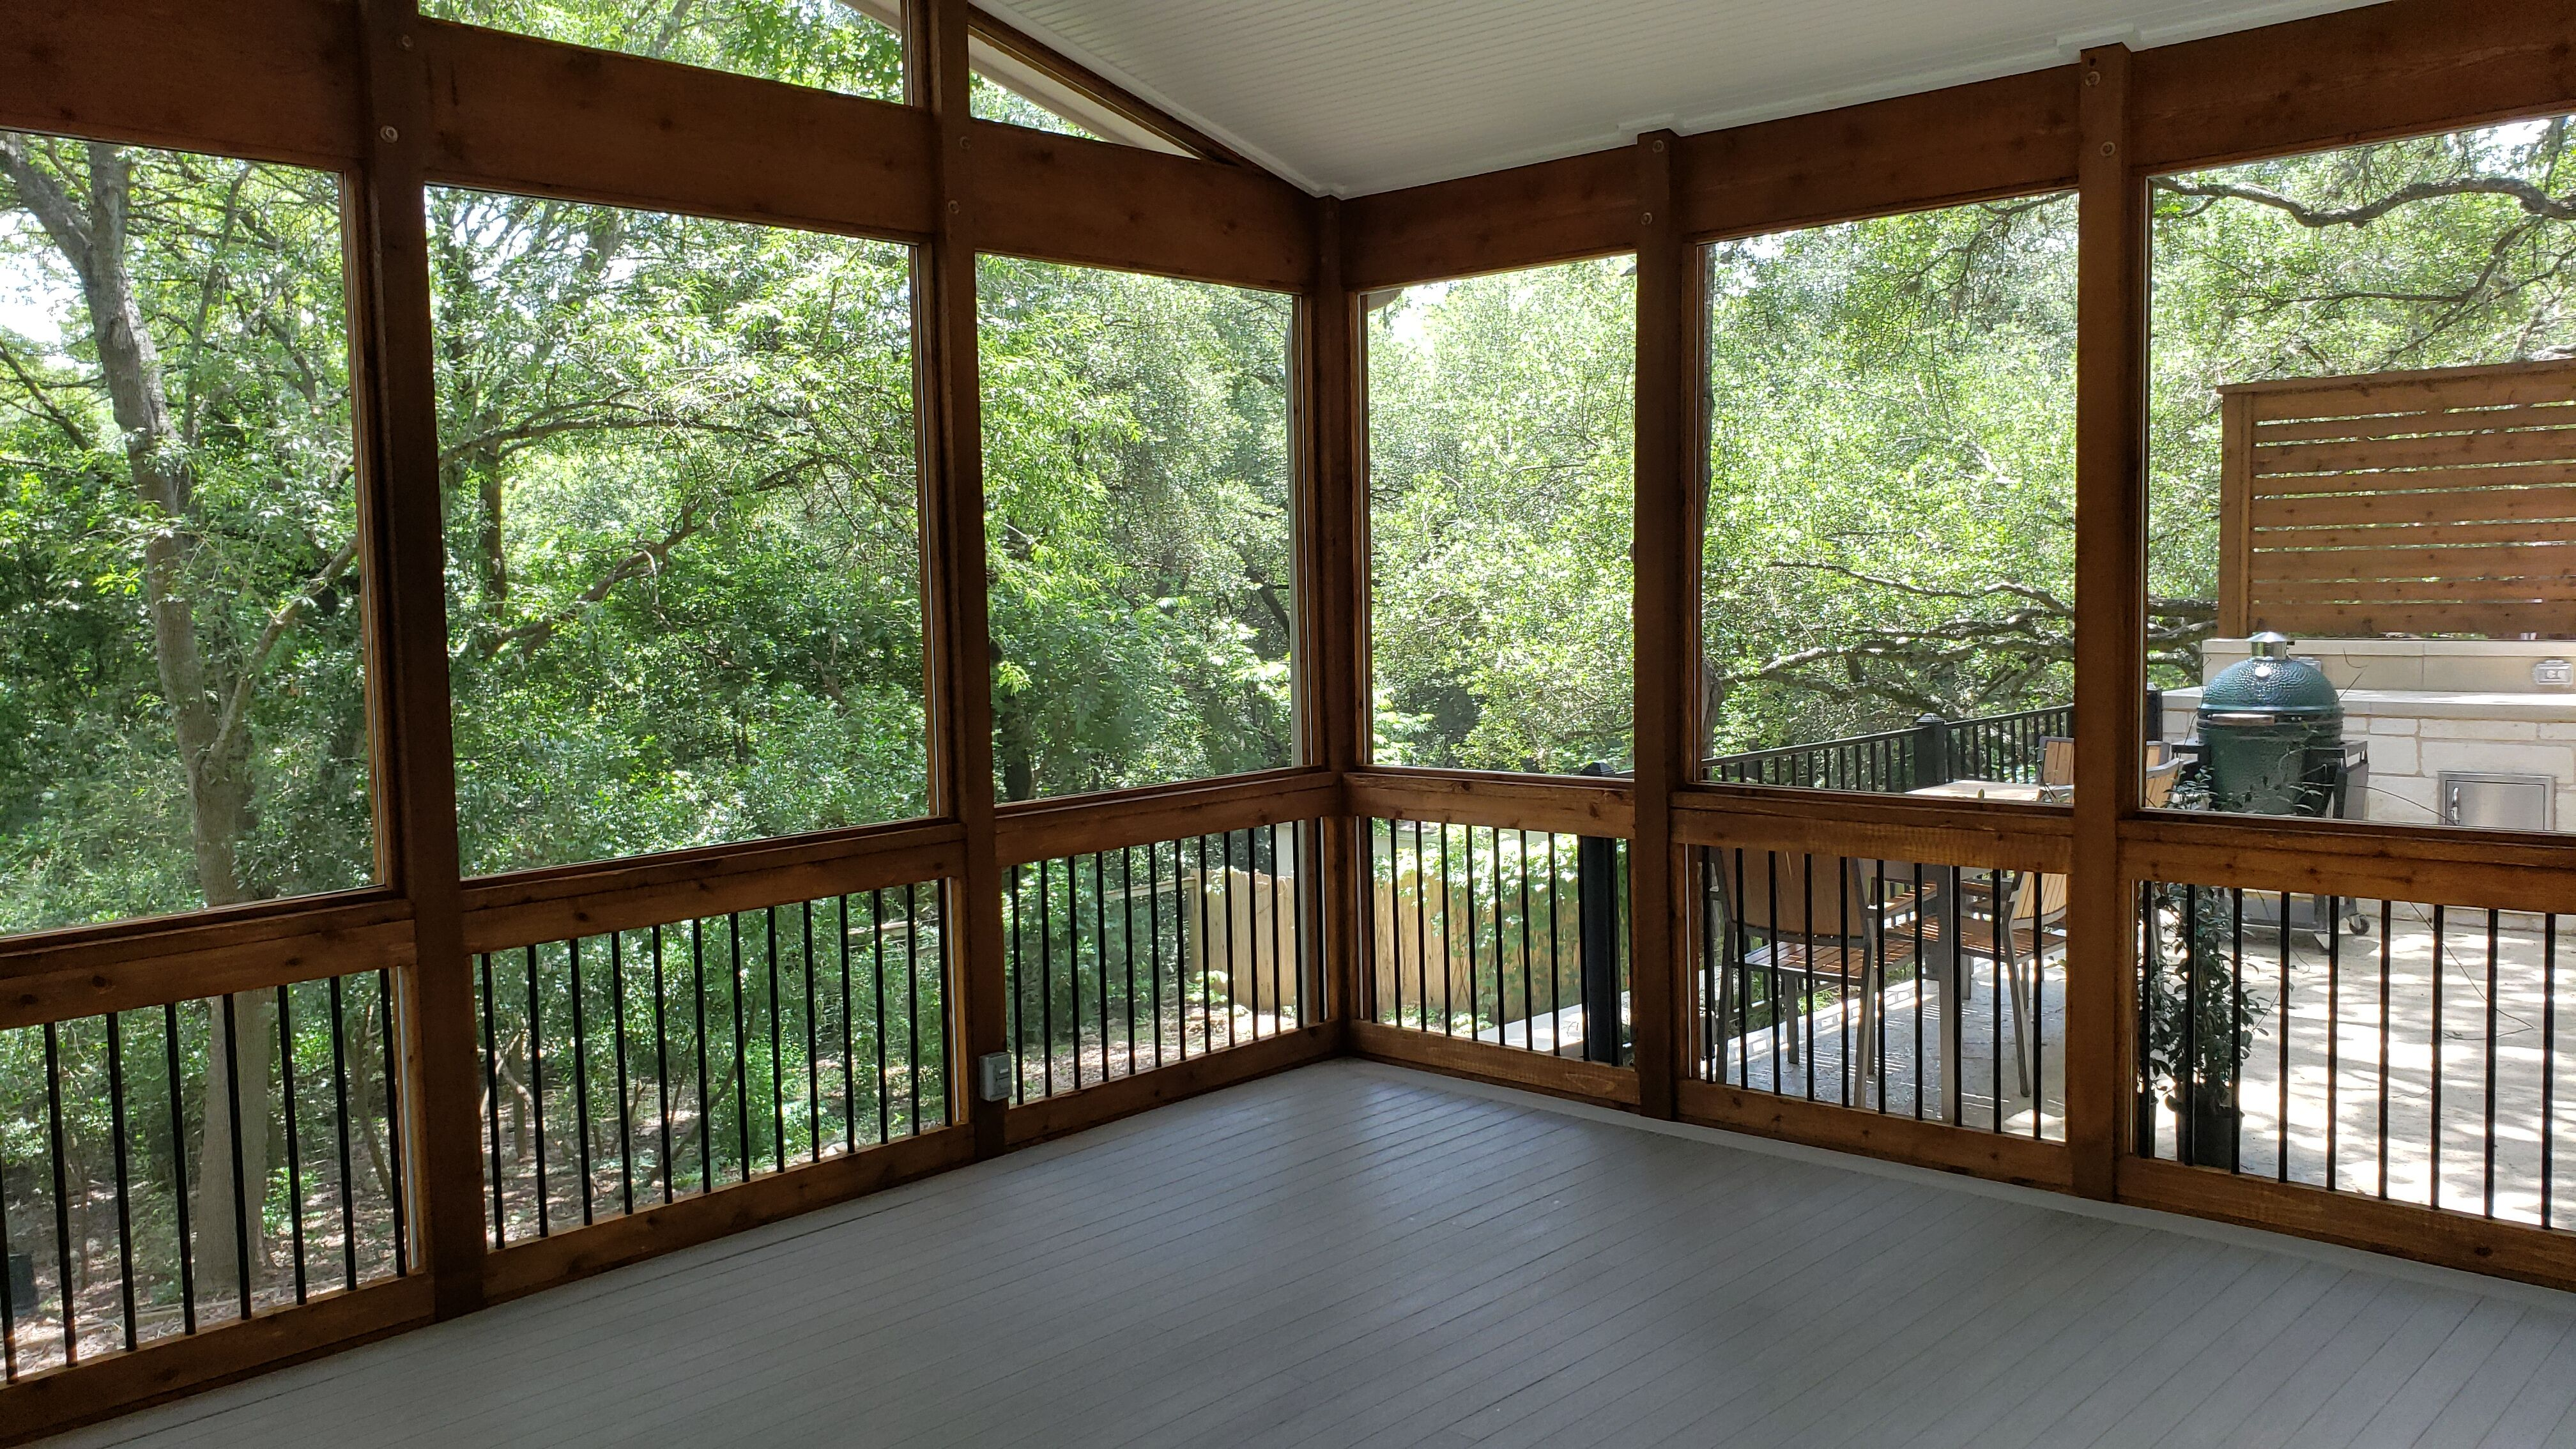 We-used-AZEK-low-maintenance-porch-flooring-for-the-new-screened-room